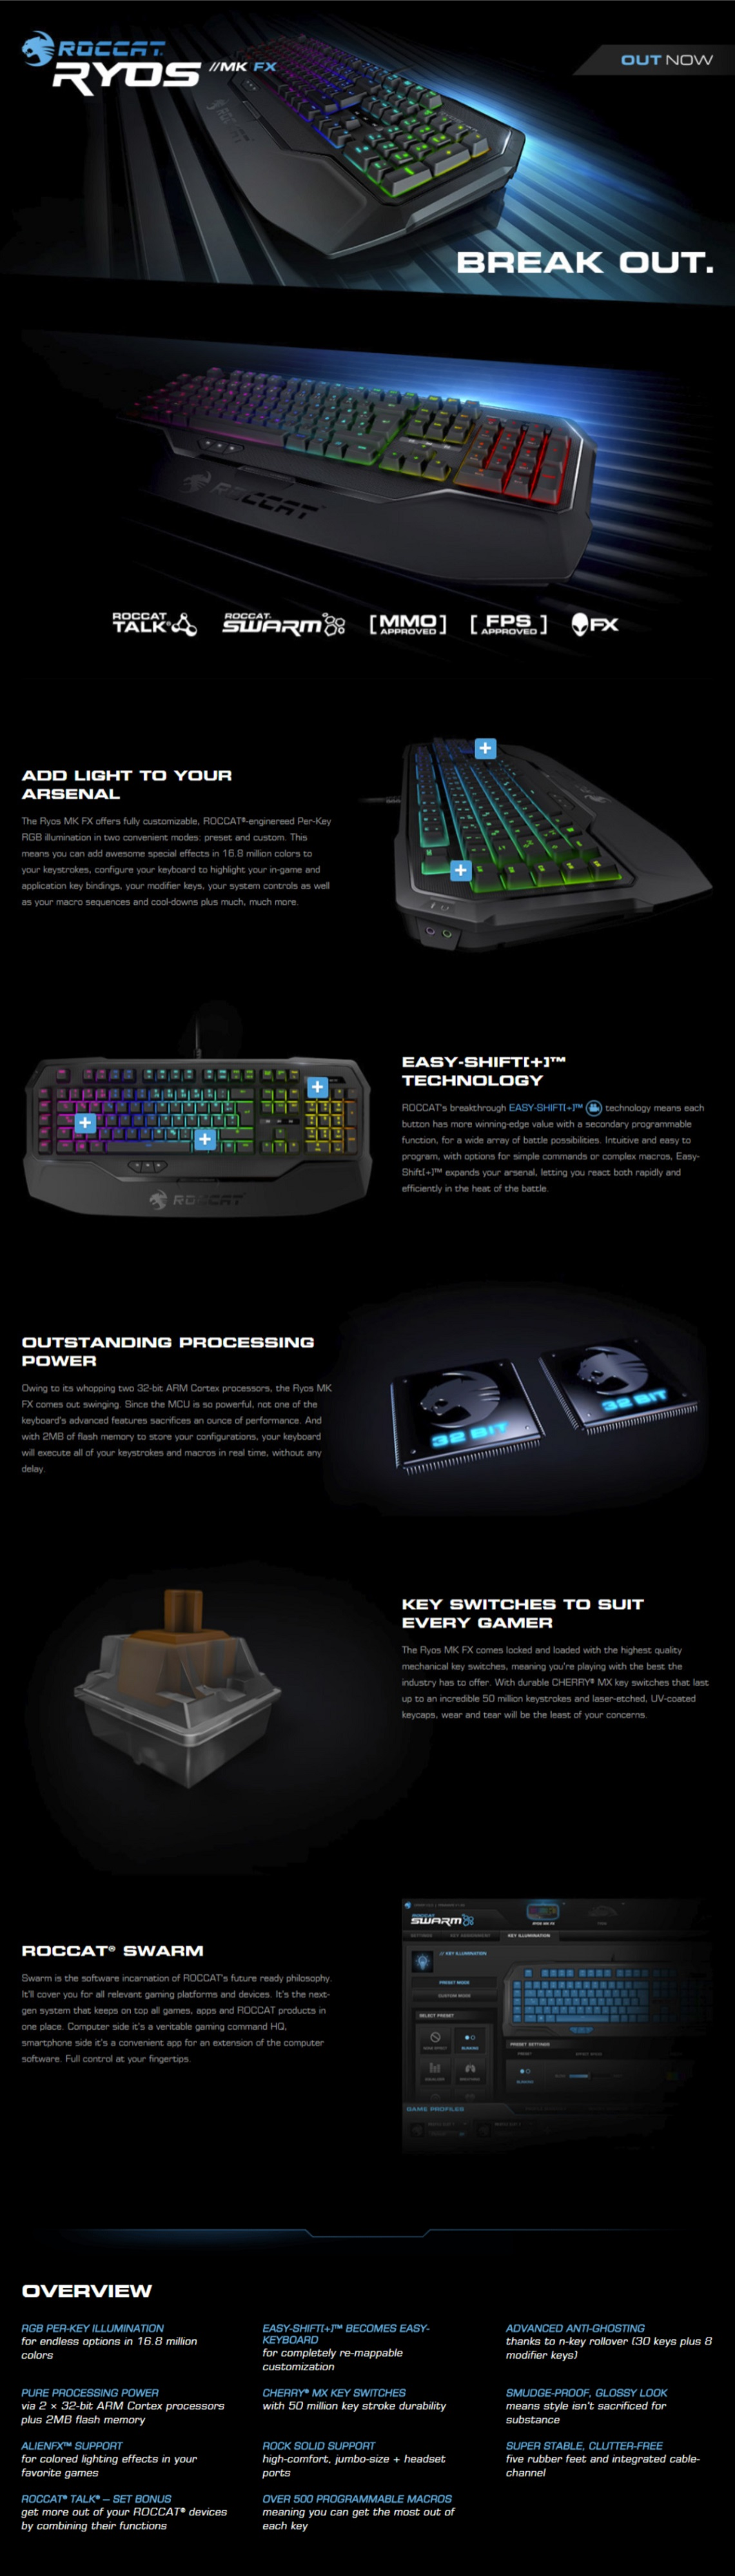 Roccat RYOS MK FX RGB Mechanical Gaming Keyboard Brown Cherry Switch Programmable